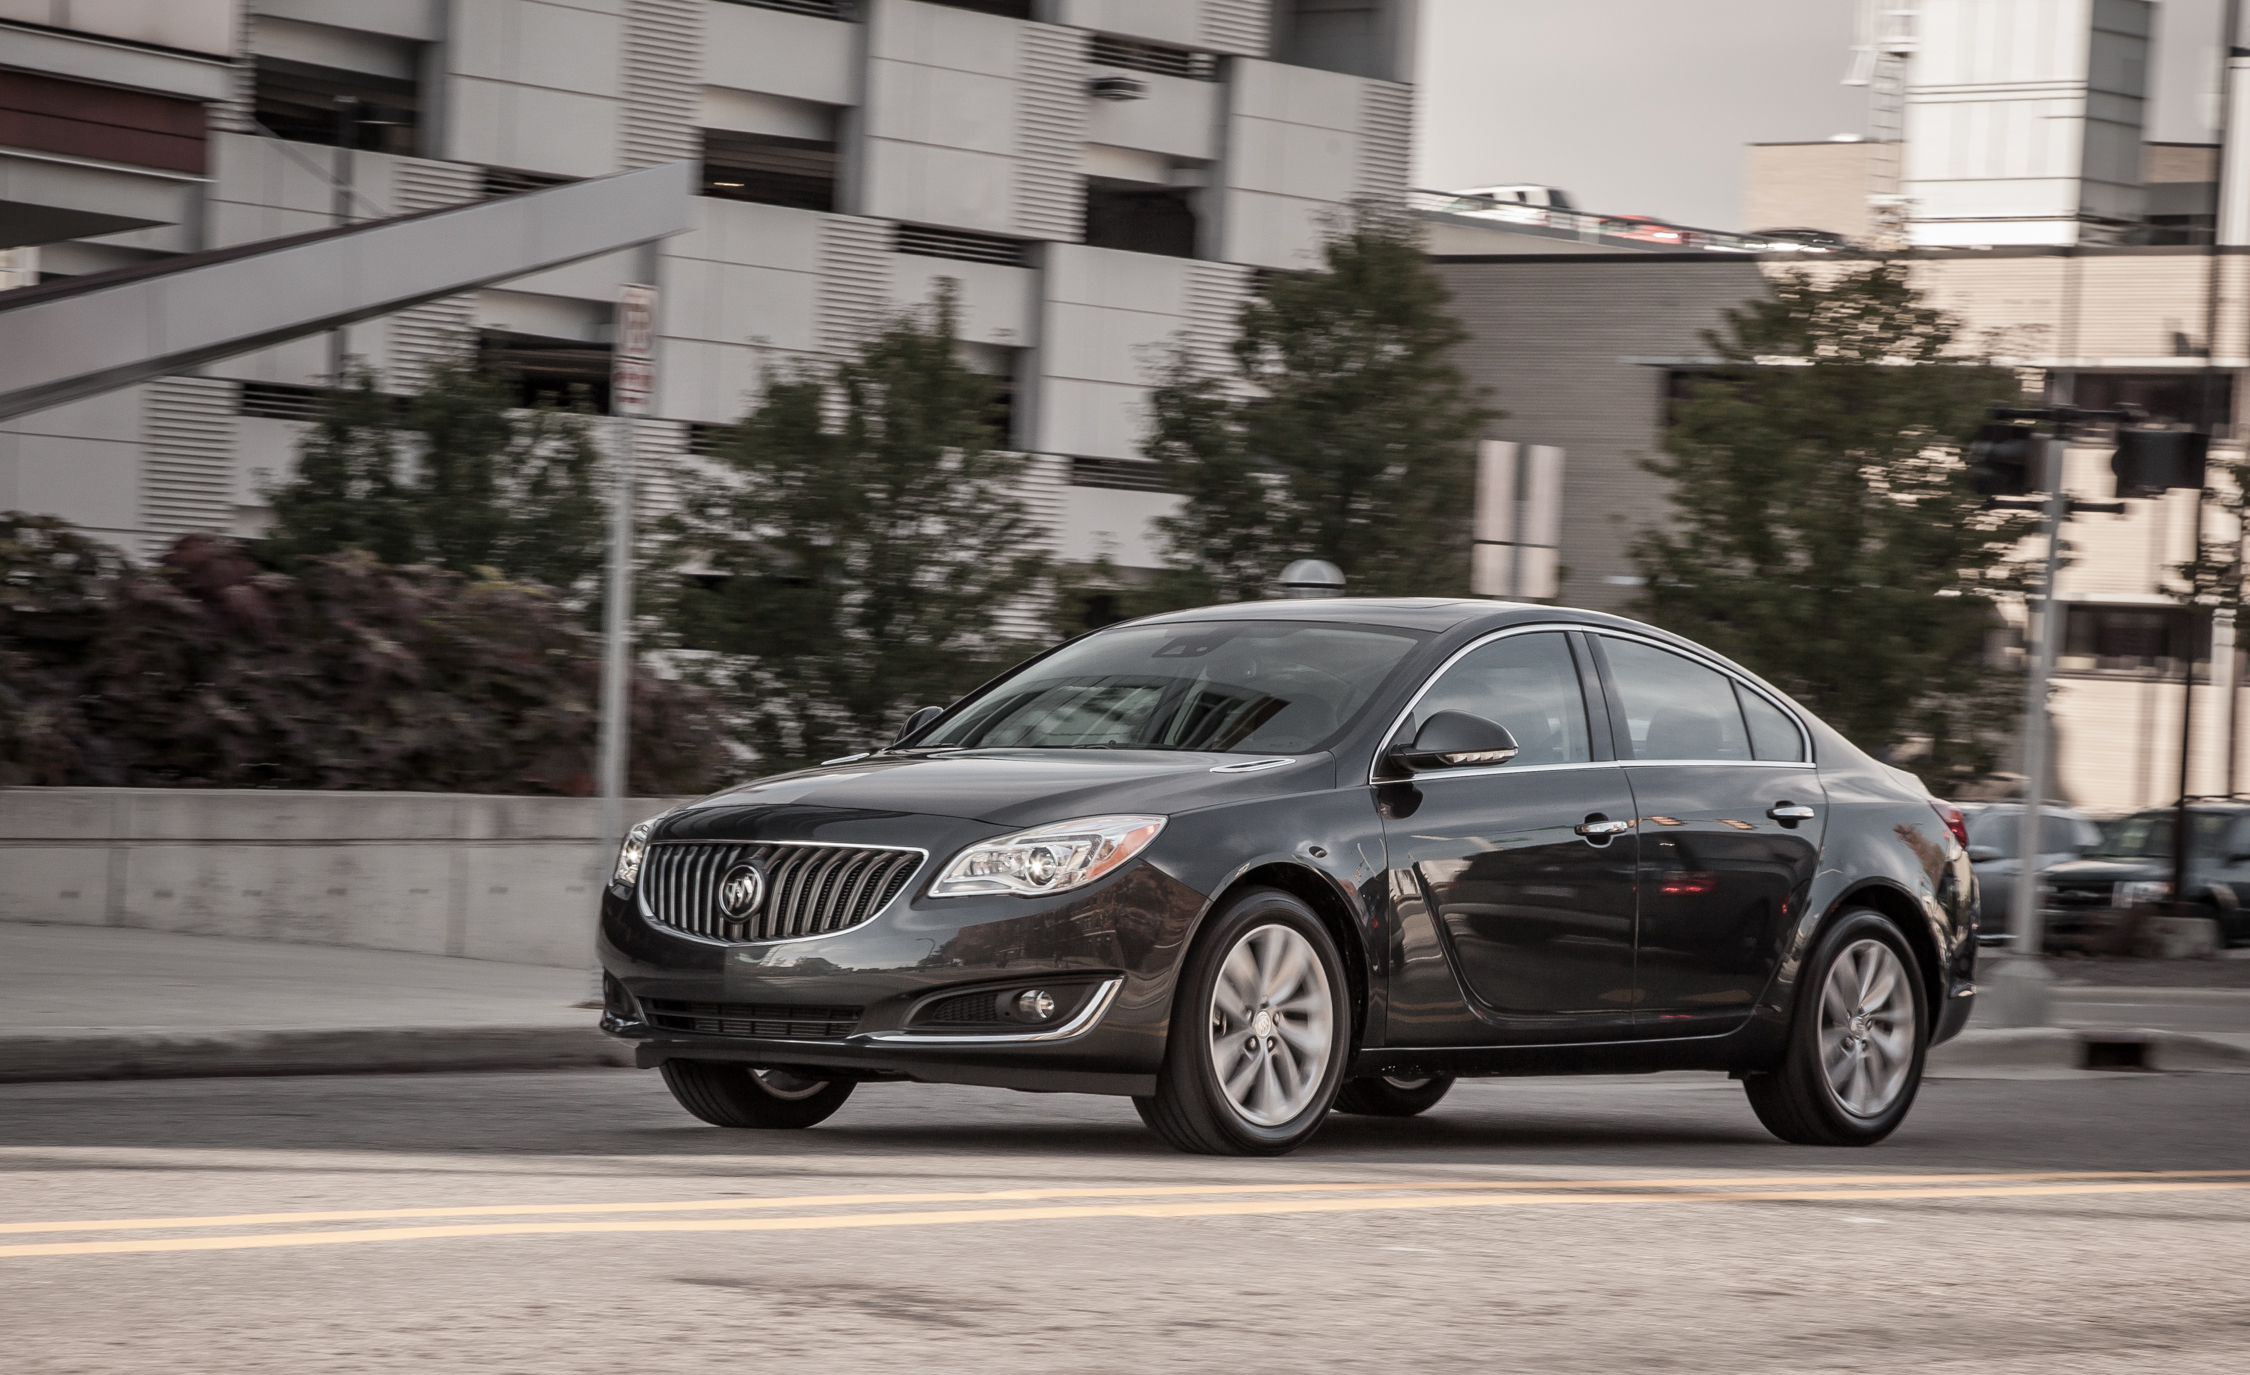 2014 Buick Regal Turbo (Photo 29 of 30)